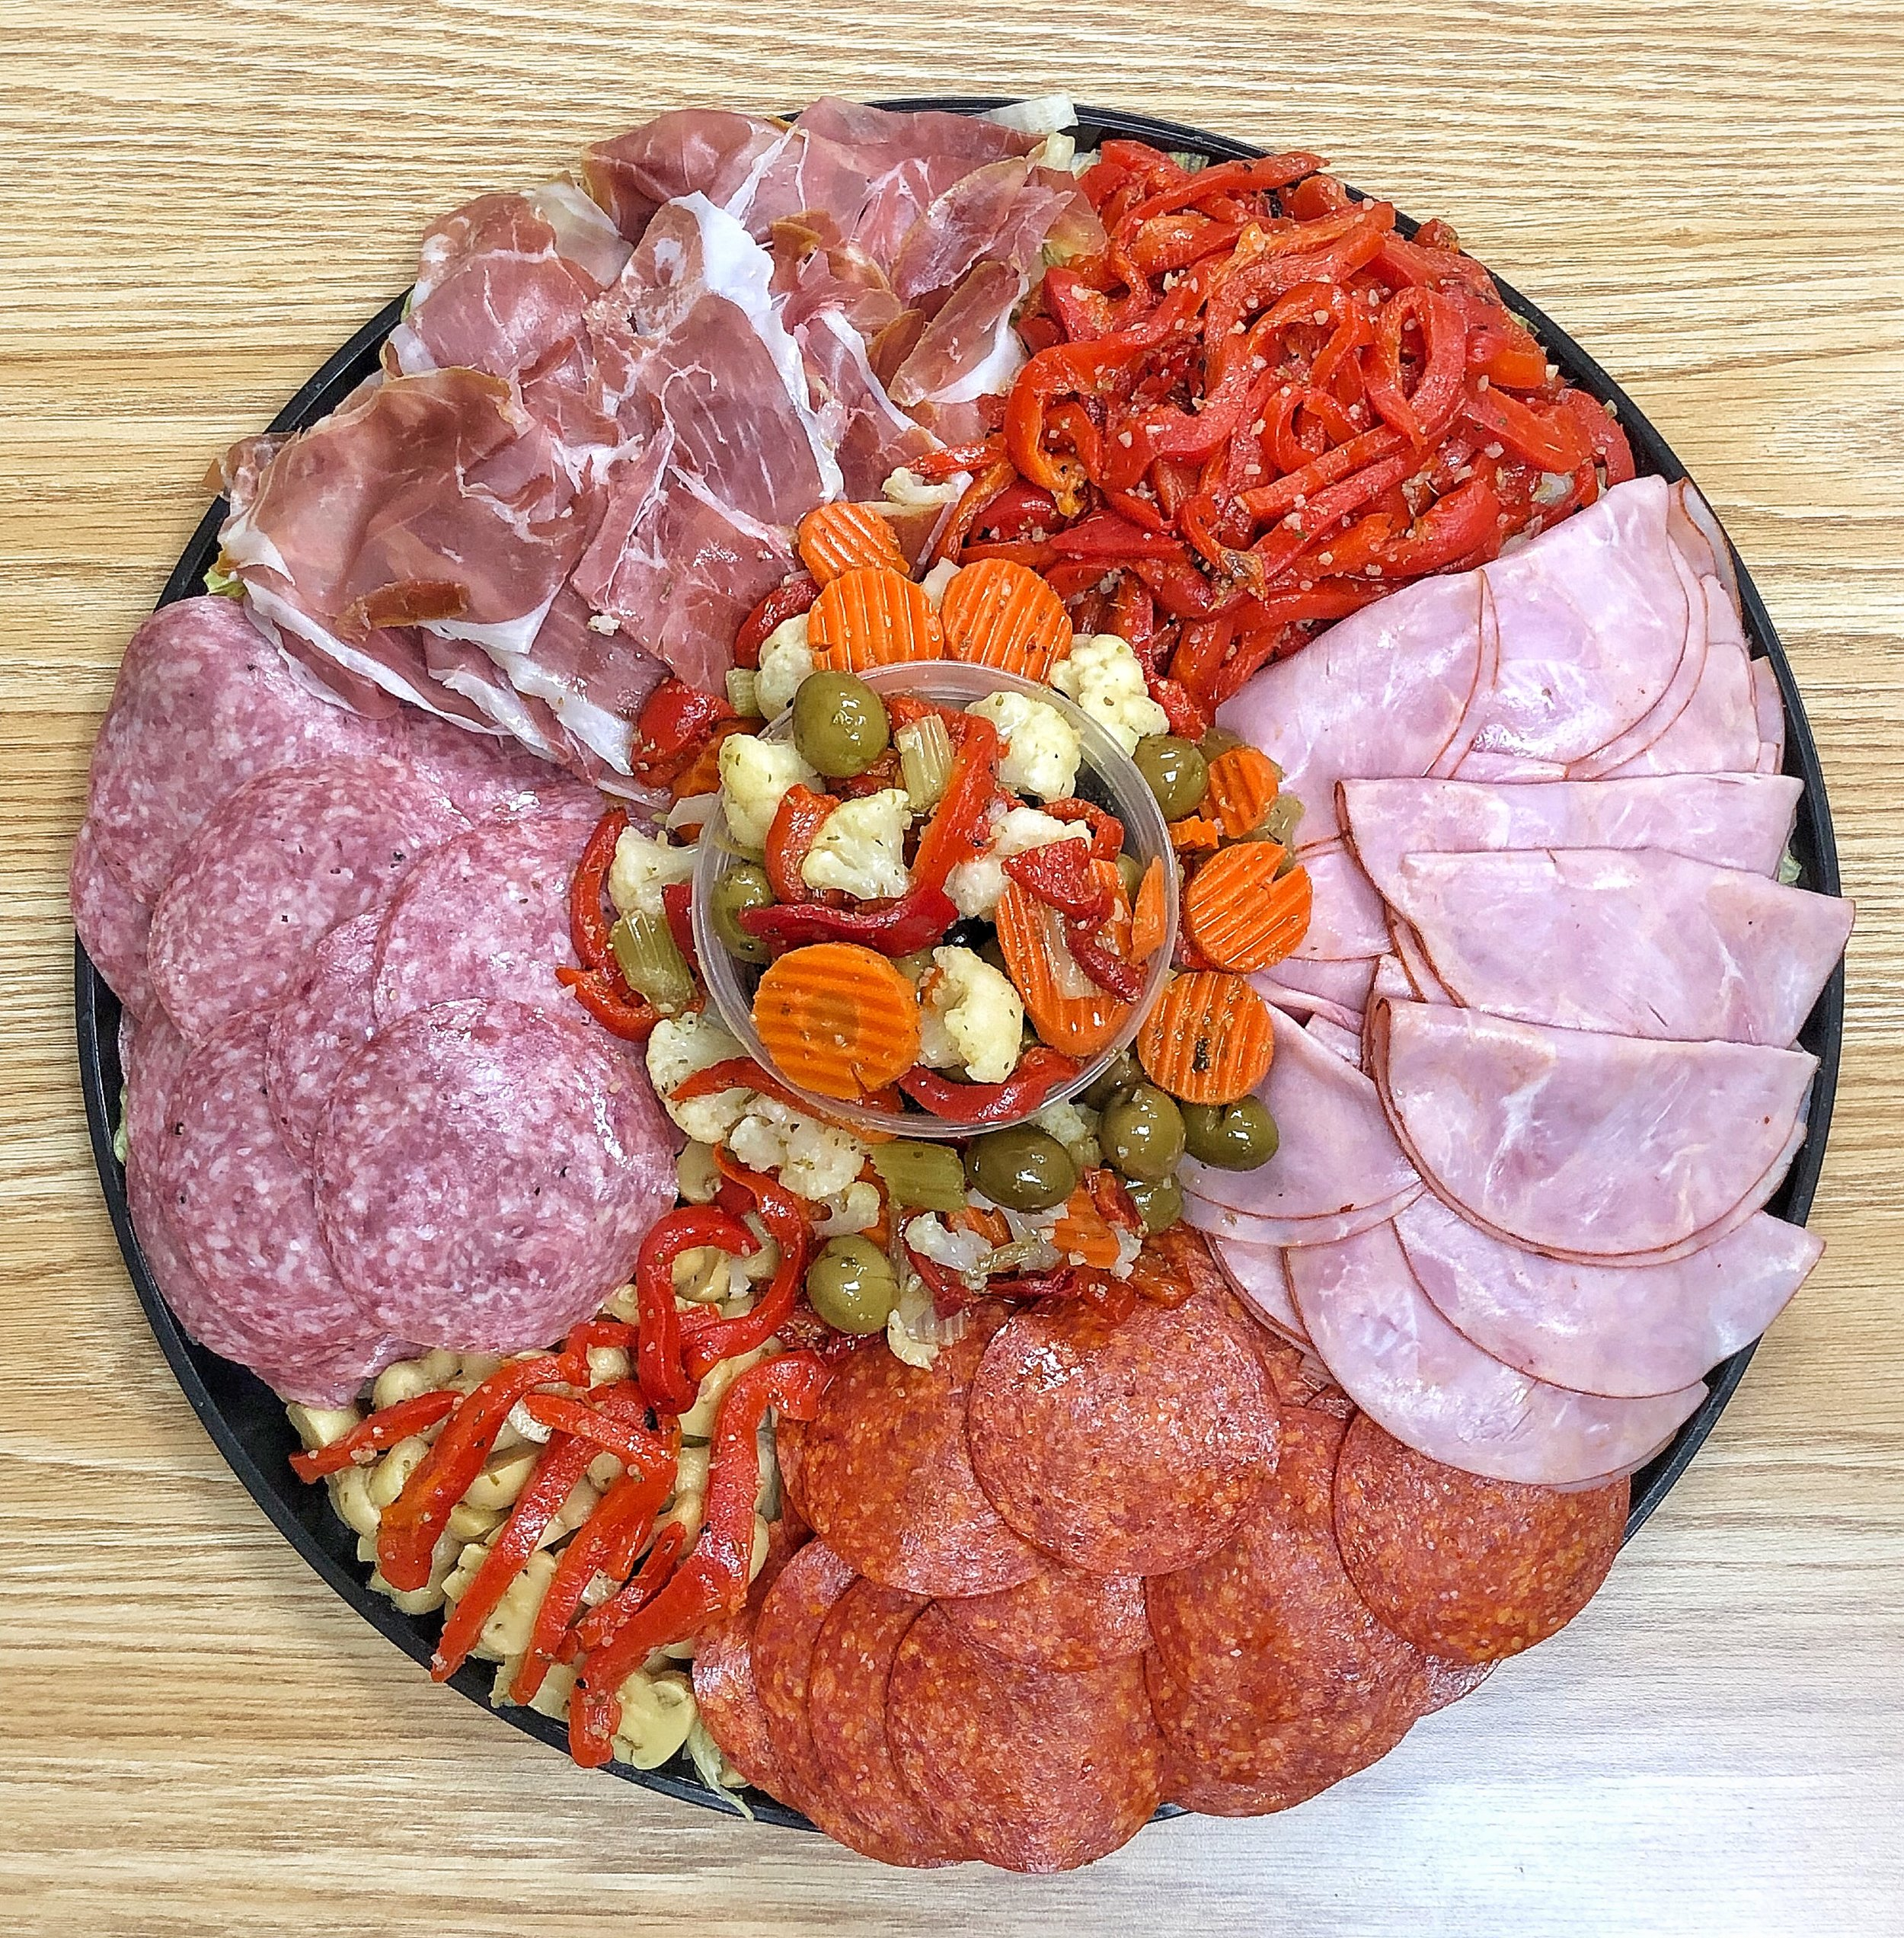 ANTIPASTO PLATTER - Meats: - Capicola Ham - Prosciutto di Parma - Genoa Salami - Mortadella - Coppa - Pepperoni - Turkey - Roast Beef - Corn BeefCheeses:- Imported Provolone - Imported Fontina - Parmigiano Reggiano - Swiss Cheese - Asiago Cheese - Fresh MozzarellaYou can customize your platter to whatever deli meats and cheeses we have in store!(Prices Vary)